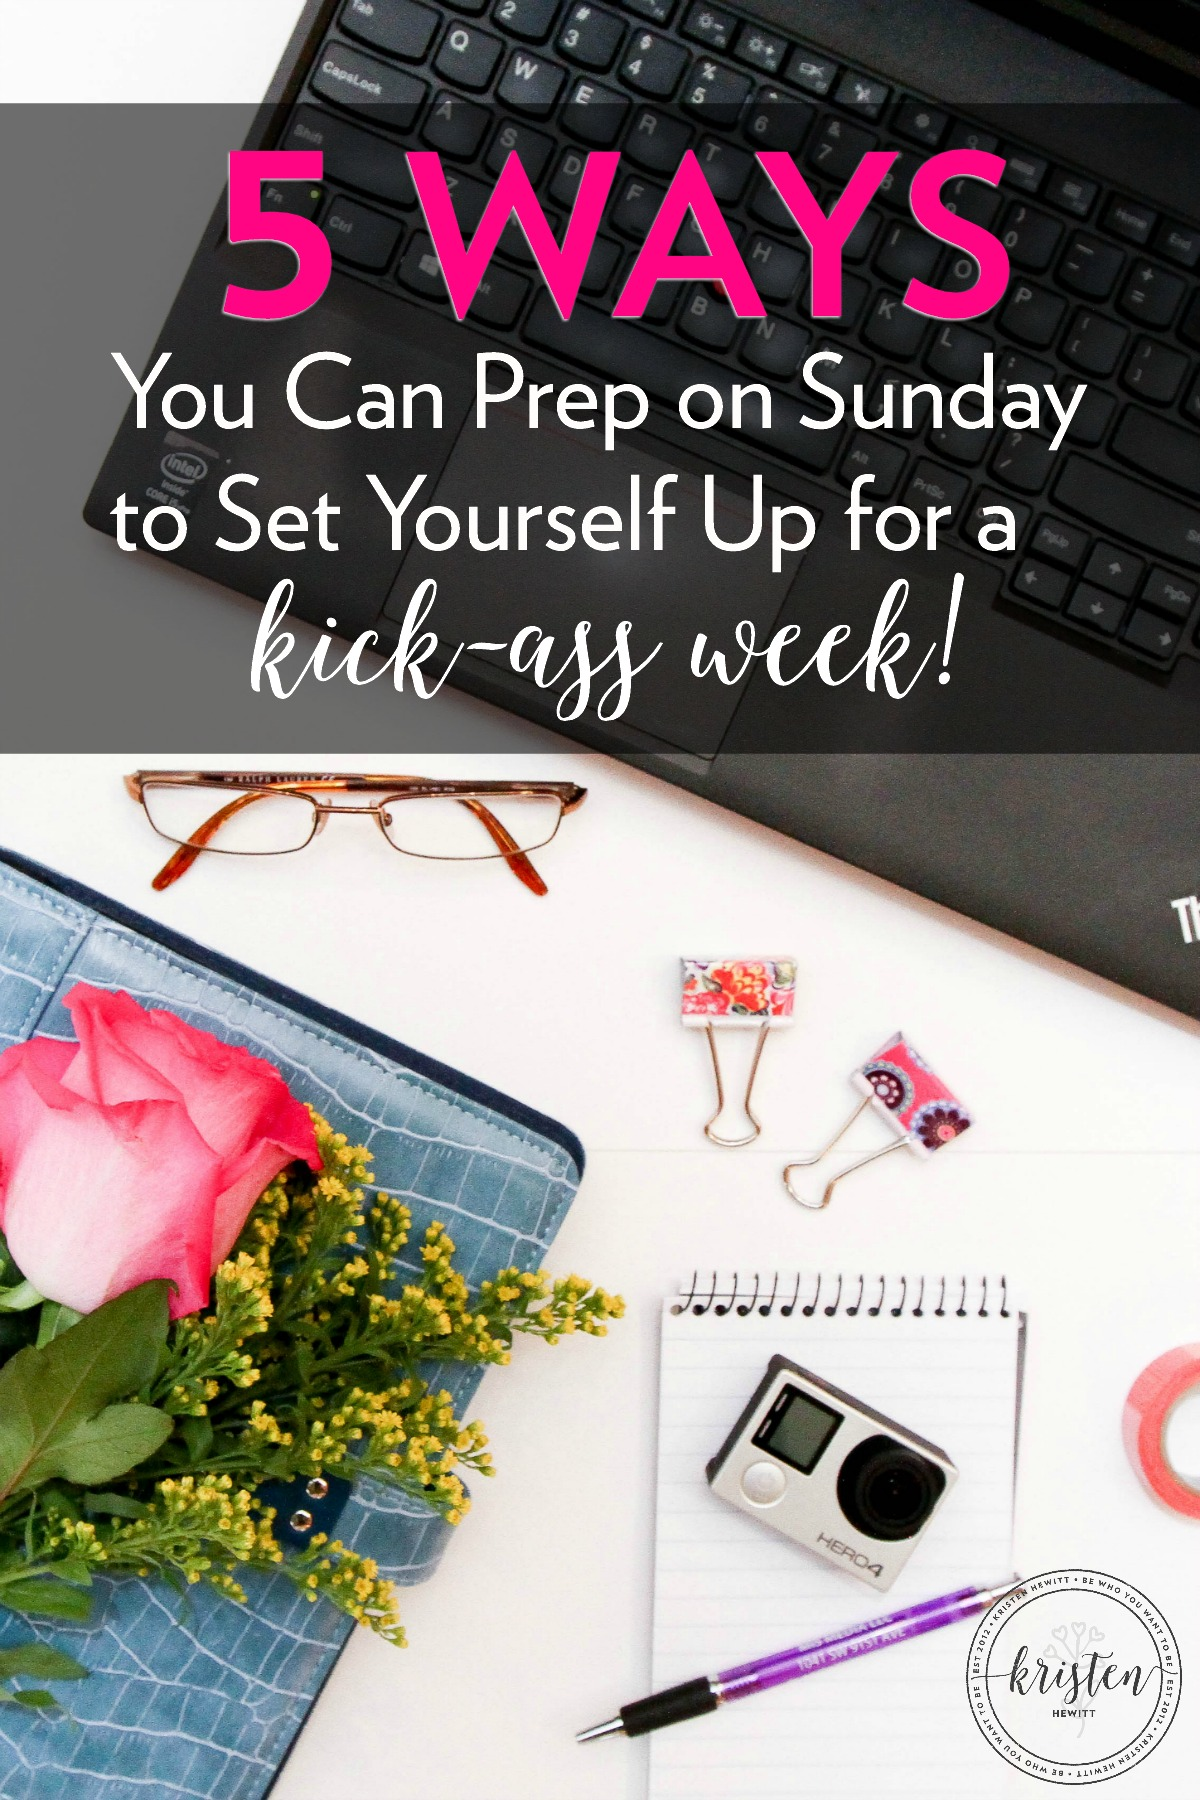 Do you find yourself lost and sometimes overwhelmed during the week trying to manage work, life, kids, and all the responsibilities at home? I did too until I started doing these things every Sunday. Try it and see if it helps you too!